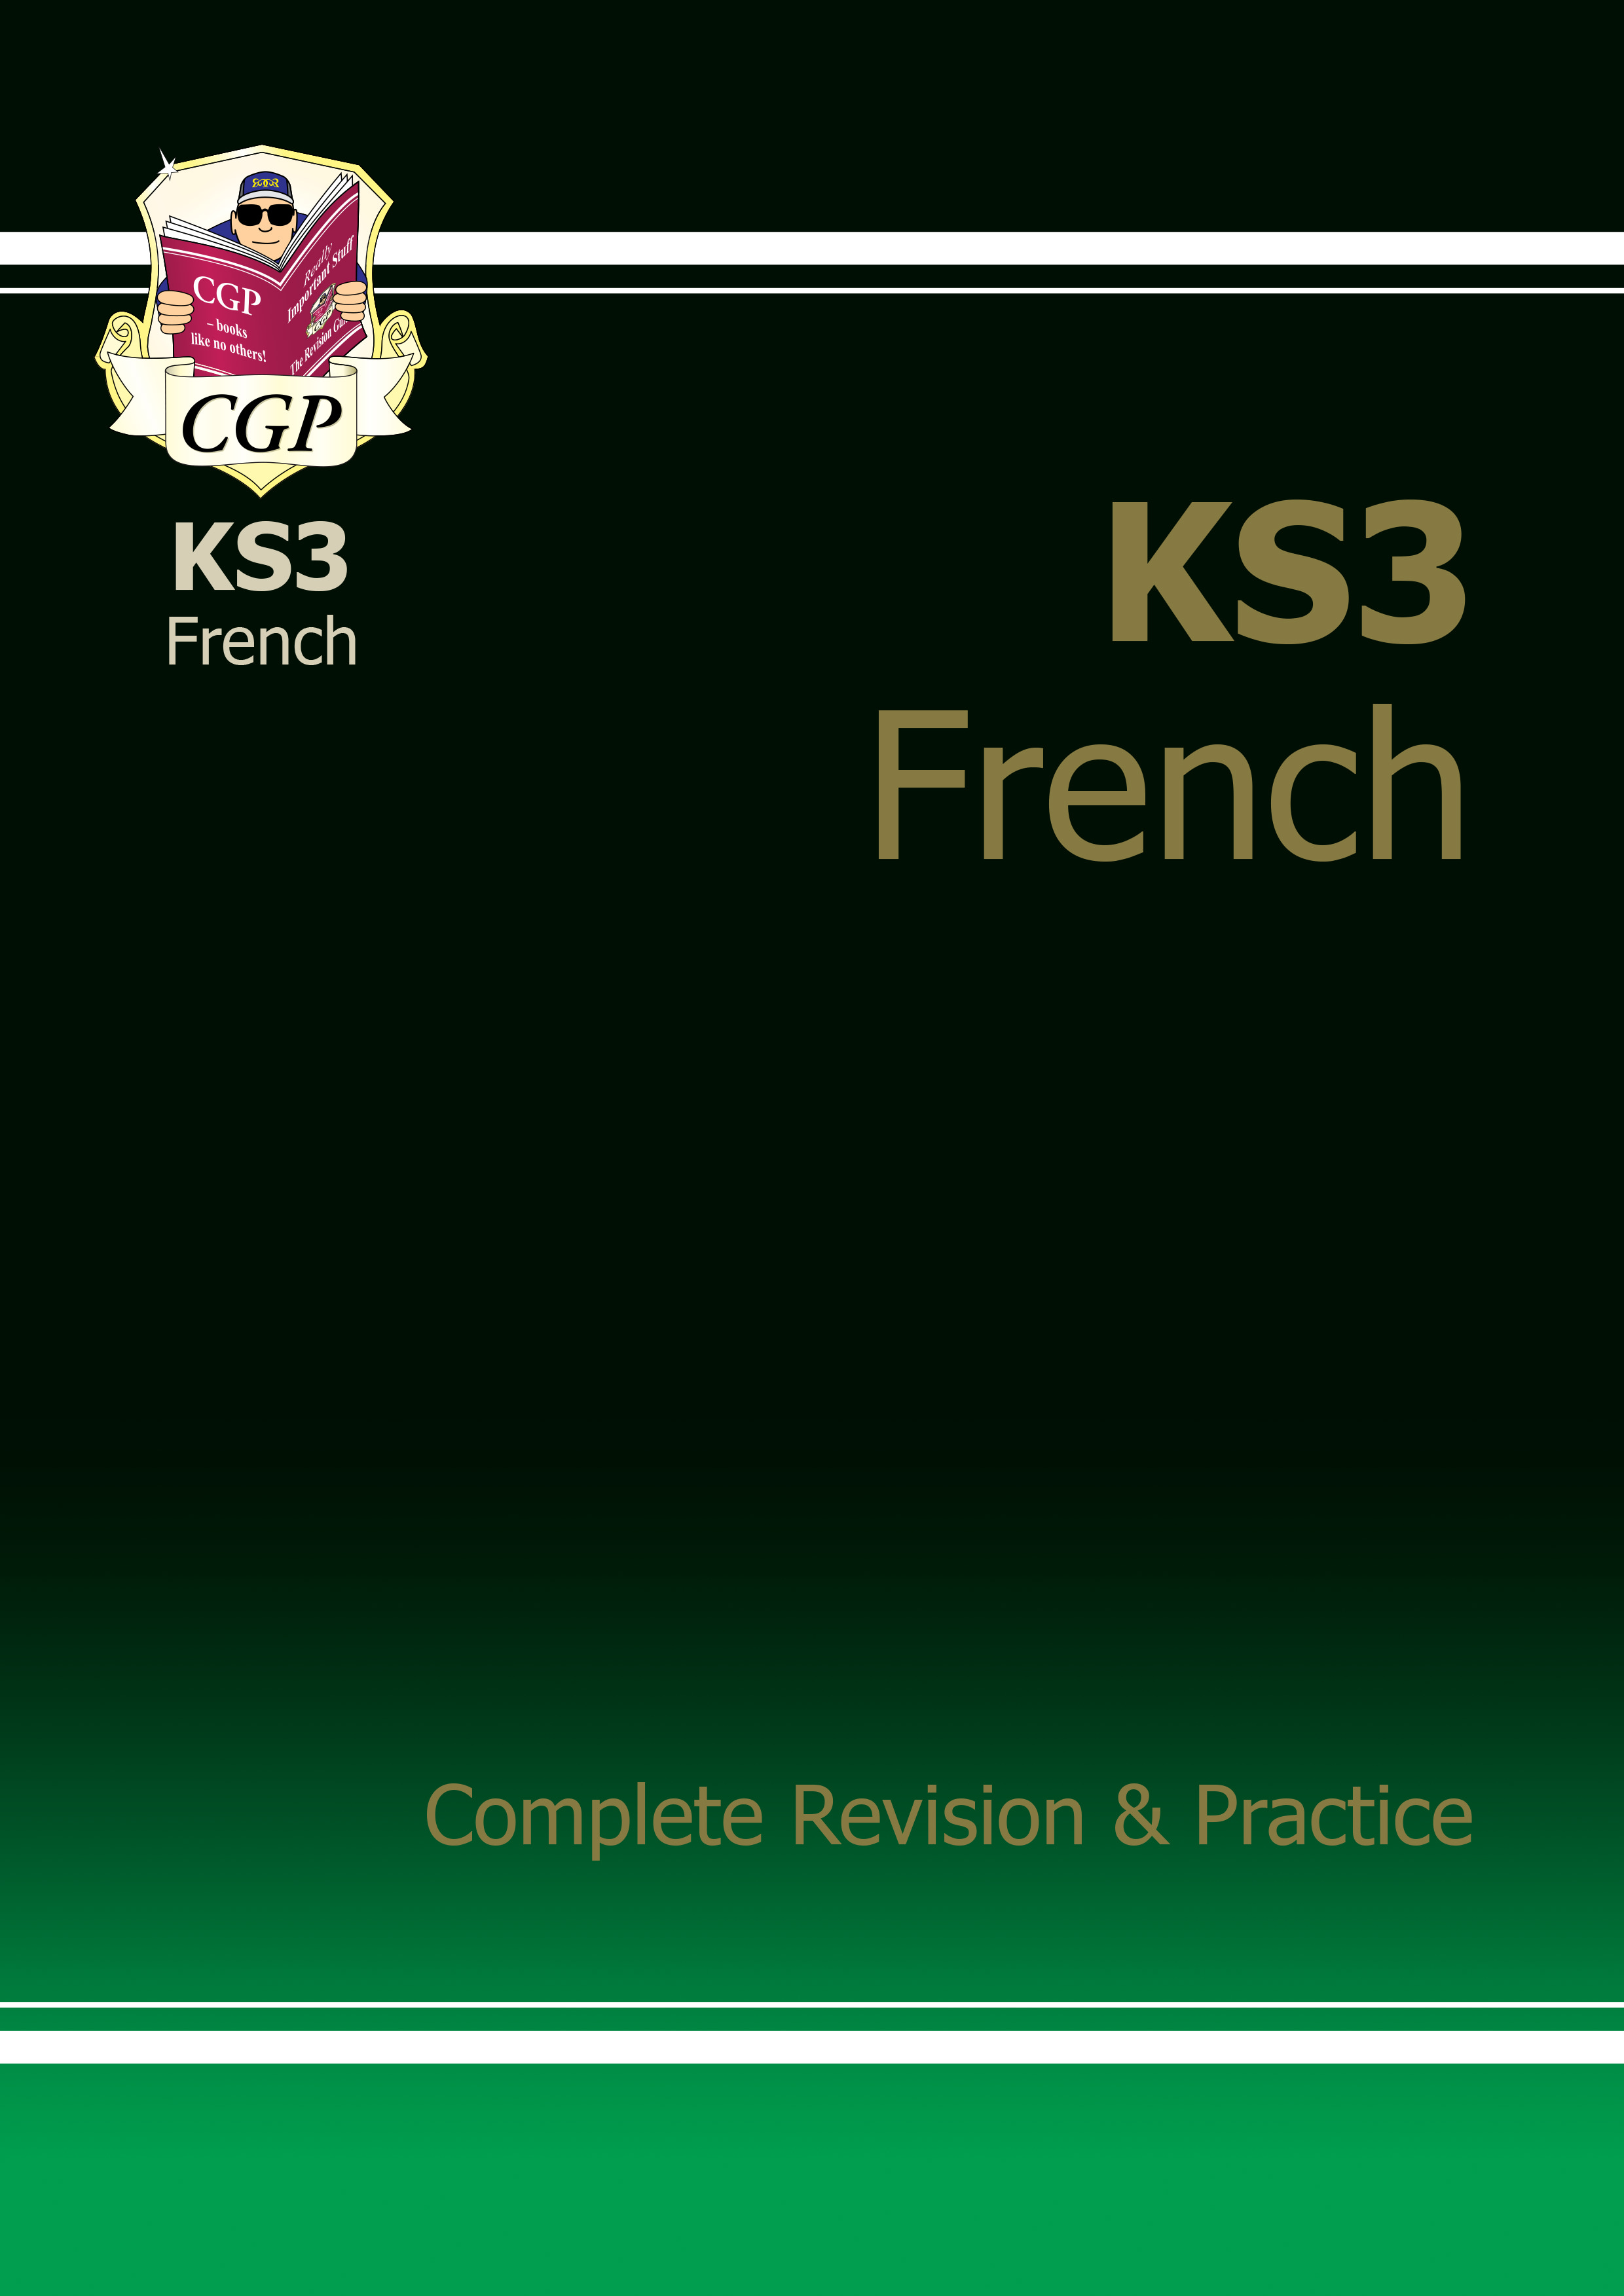 FHS32DK - KS3 French Complete Revision & Practice